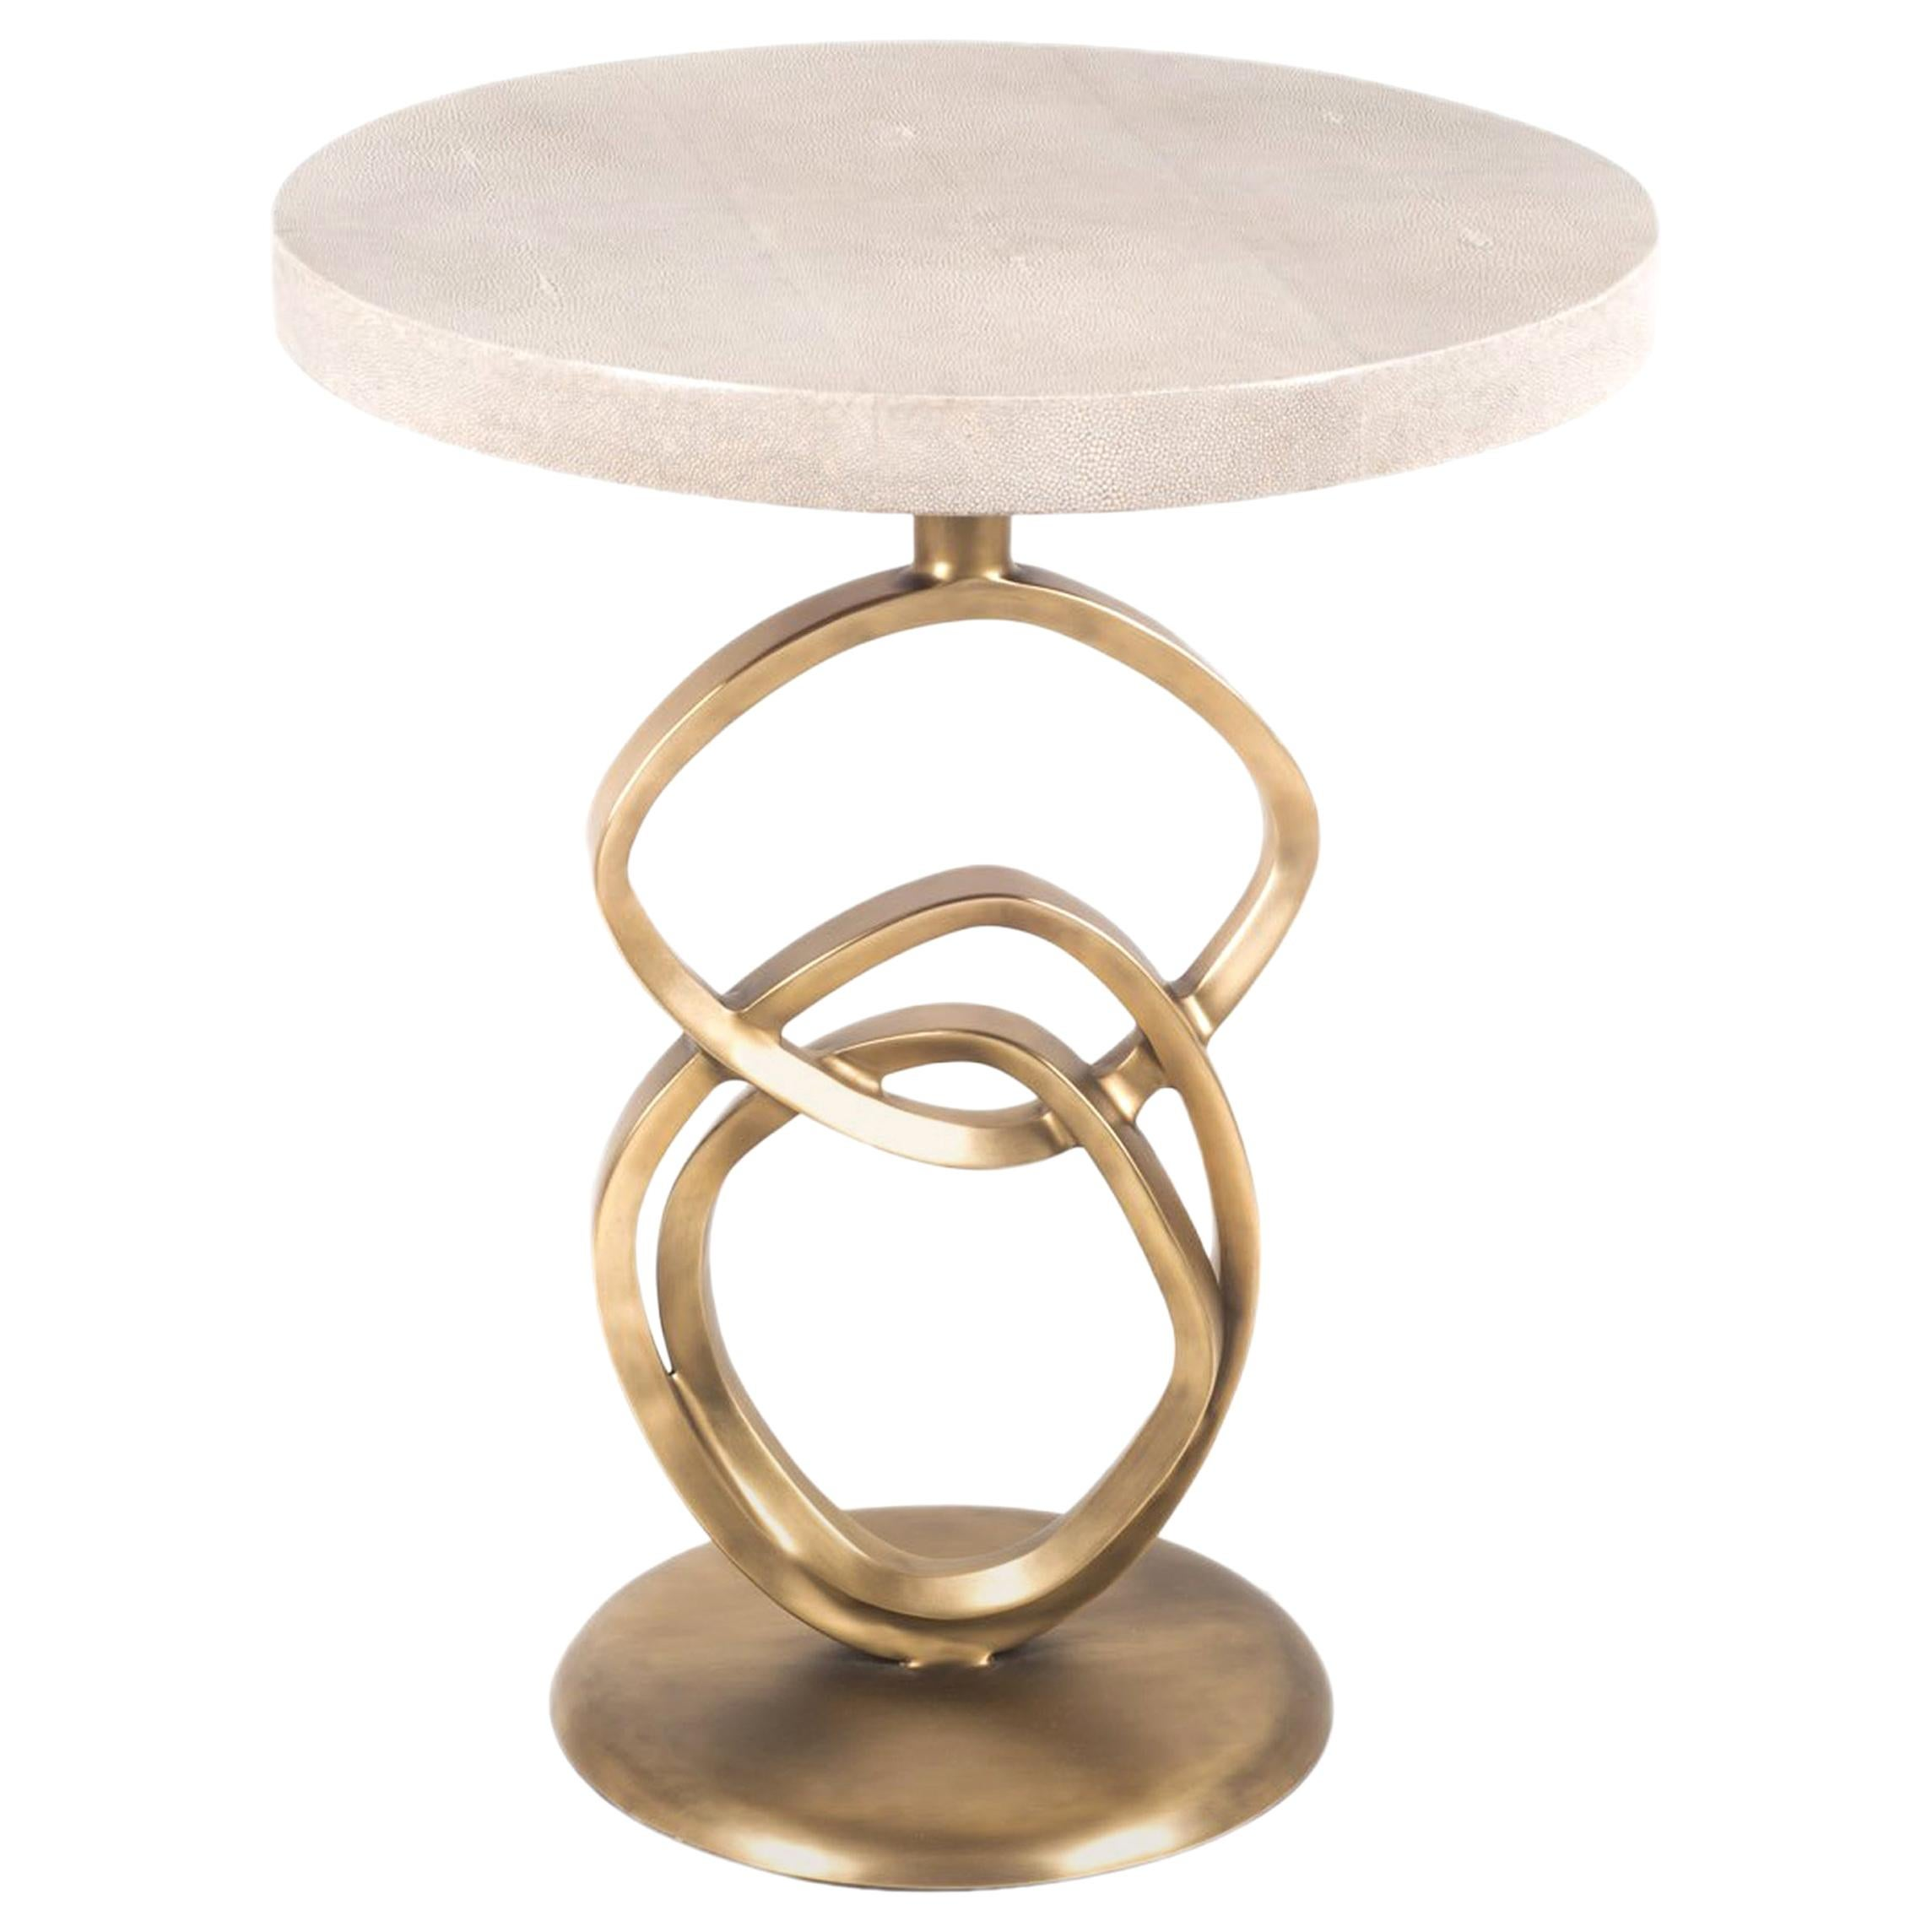 Teardrop I Side Table in Cream Shagreen and Bronze Patina Brass by Kifu Paris